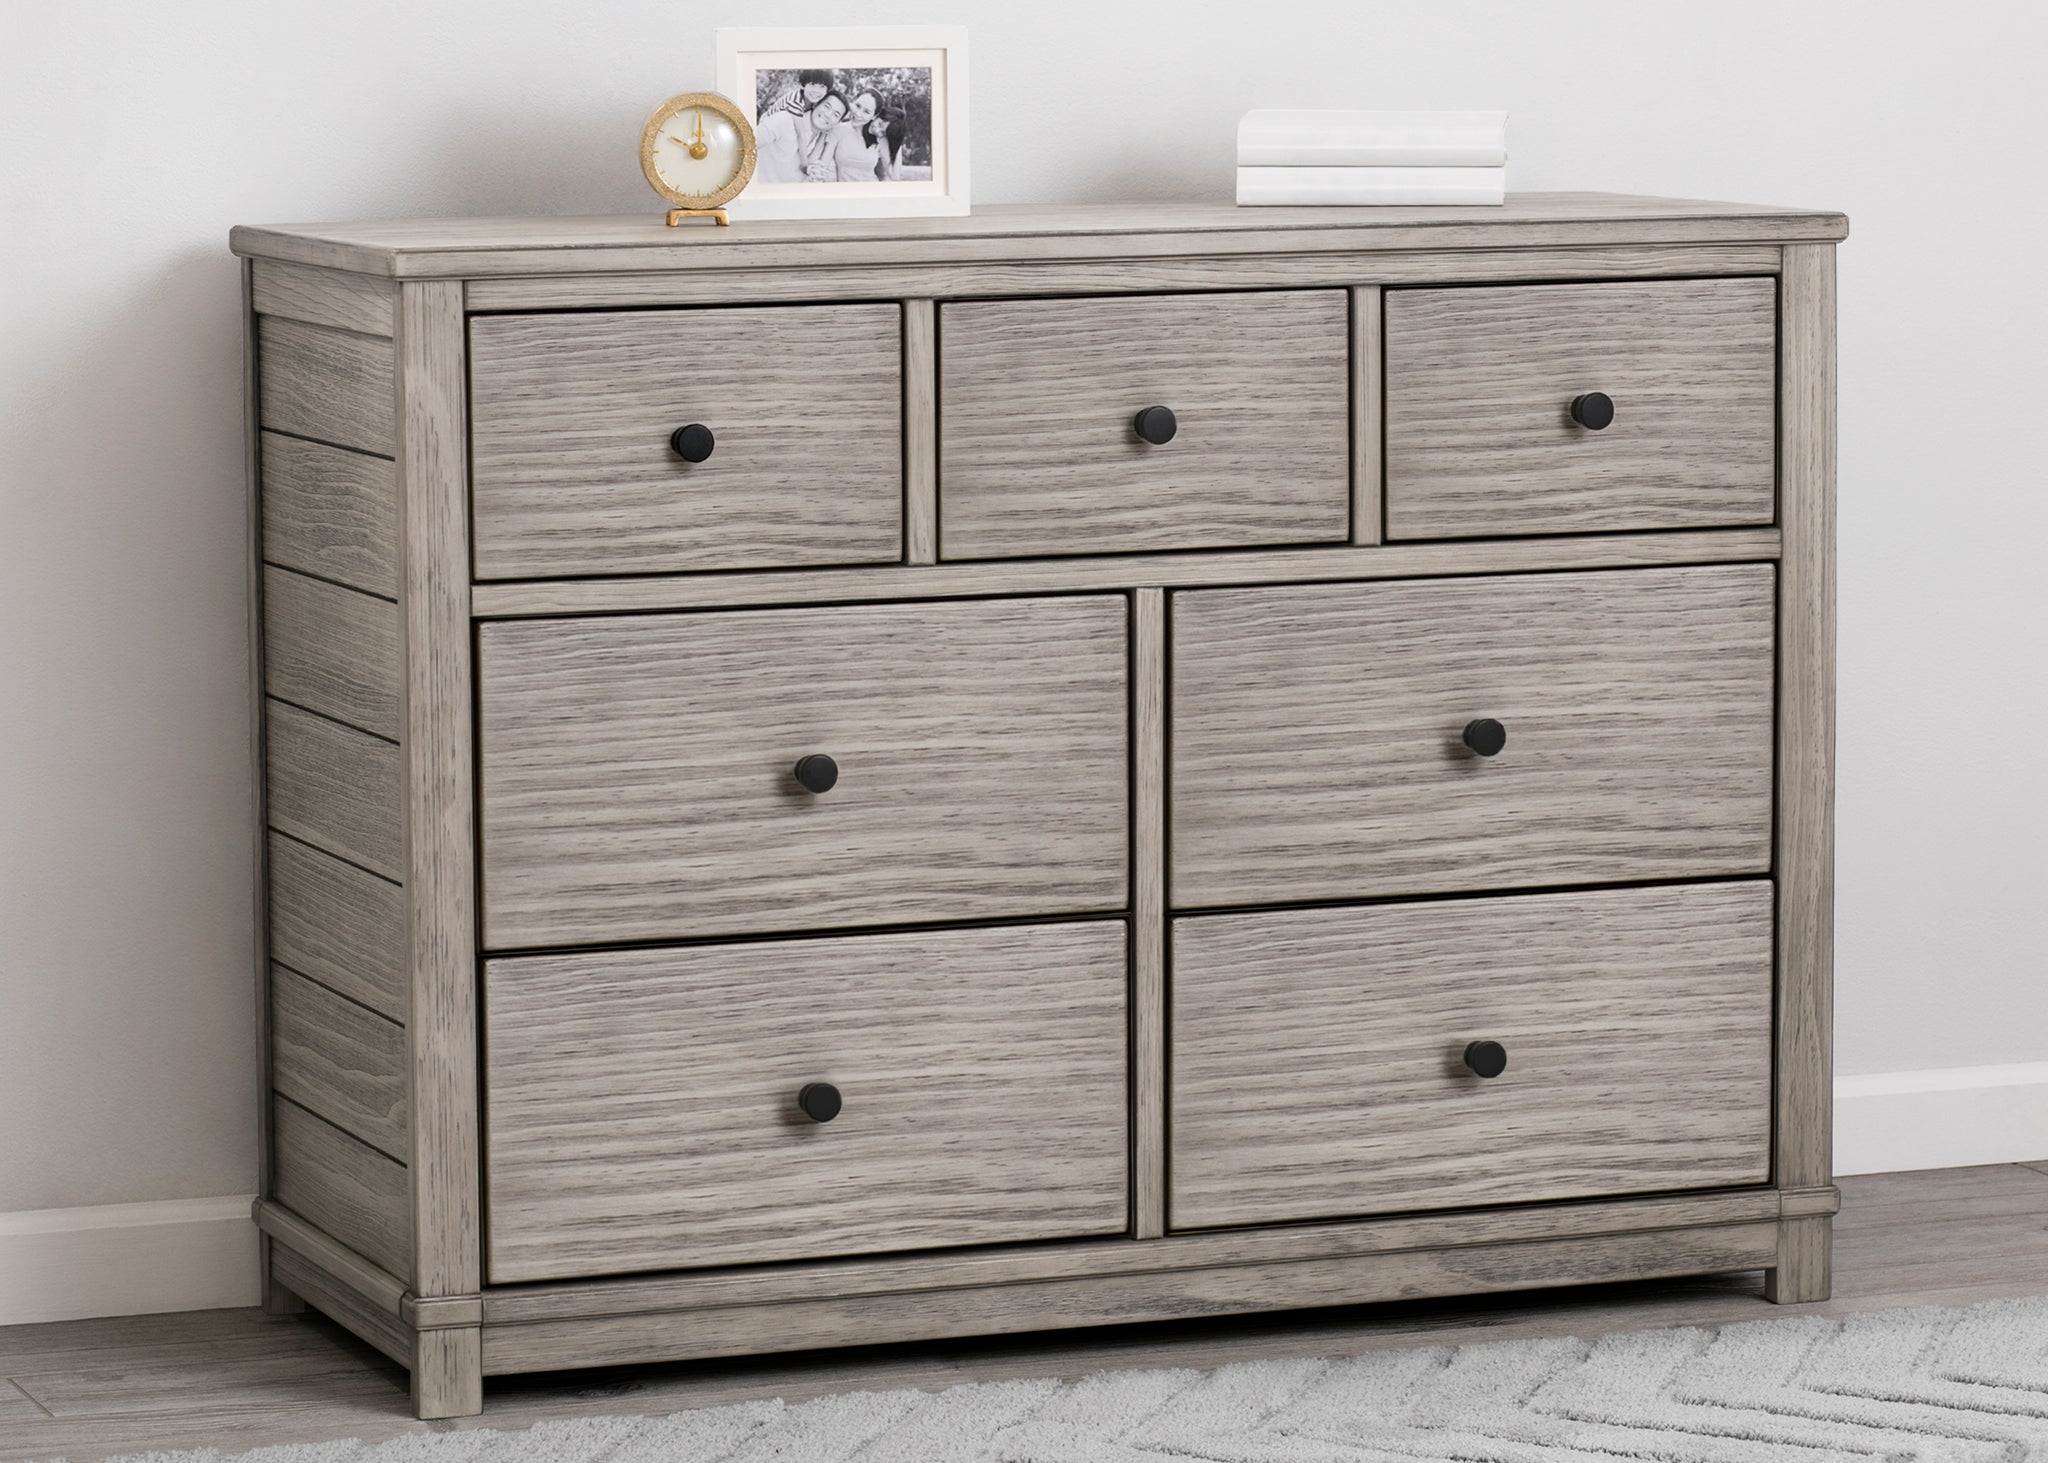 Simmons Kids Rustic White (119) Monterey 7 Drawer Dresser